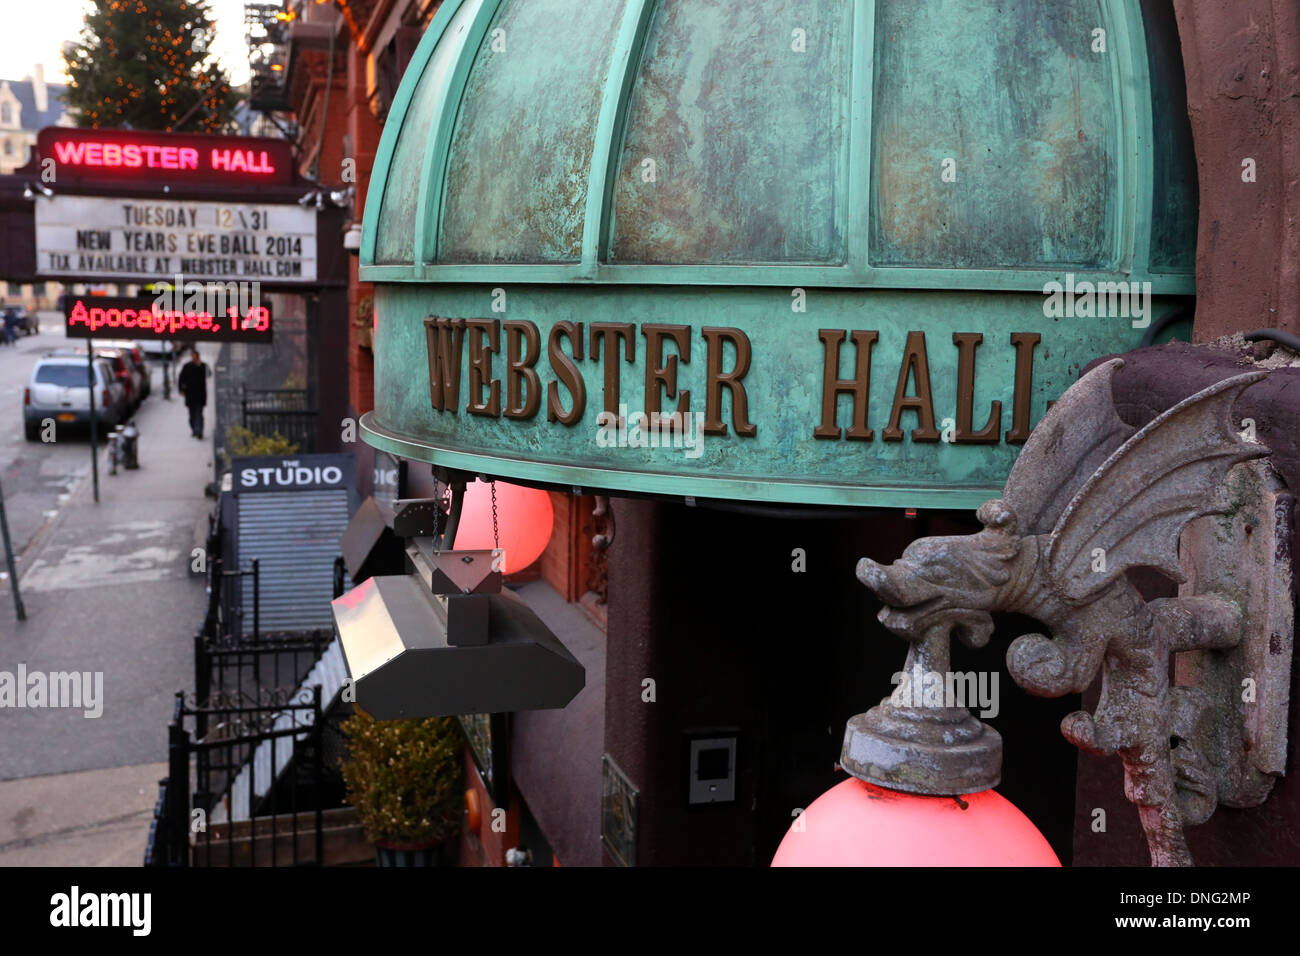 Webster Hall night club in NYC. Stock Photo